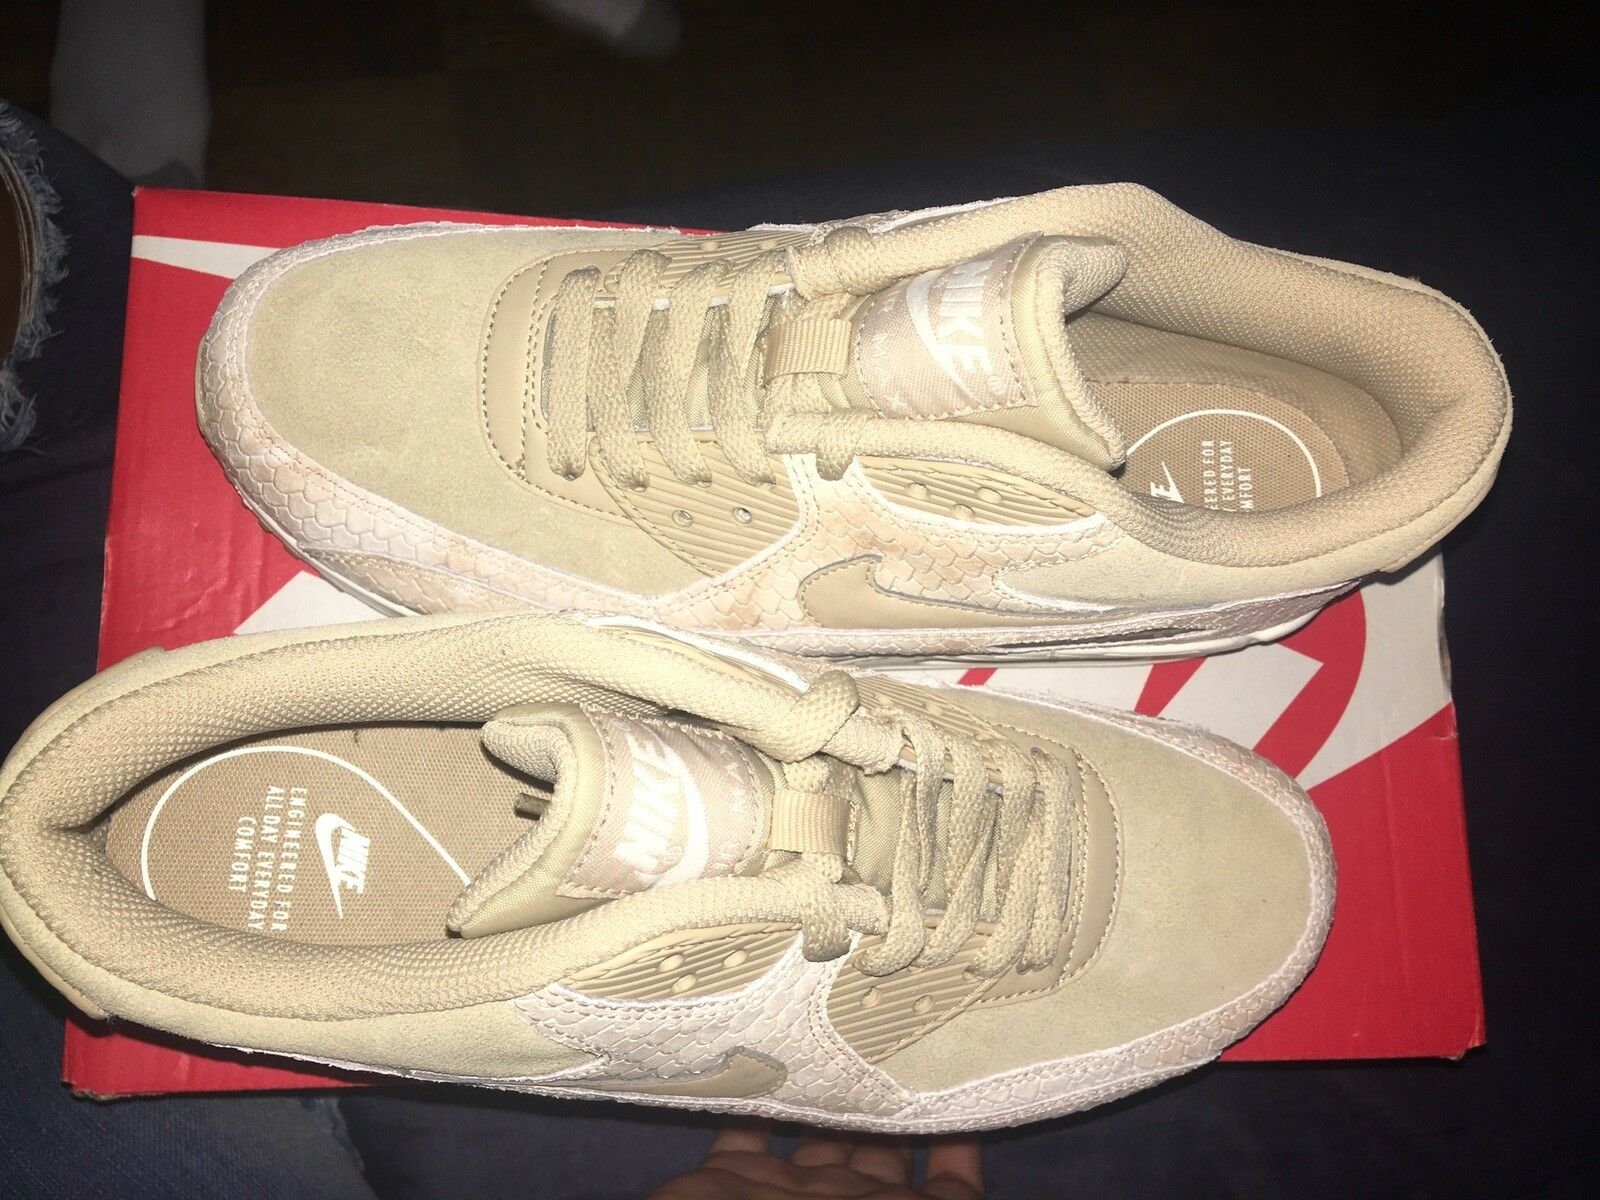 New Women's Nike Air Max 90 Linen Sail Snake Snake Snake shoes 896497-200 Size 8 a34aba